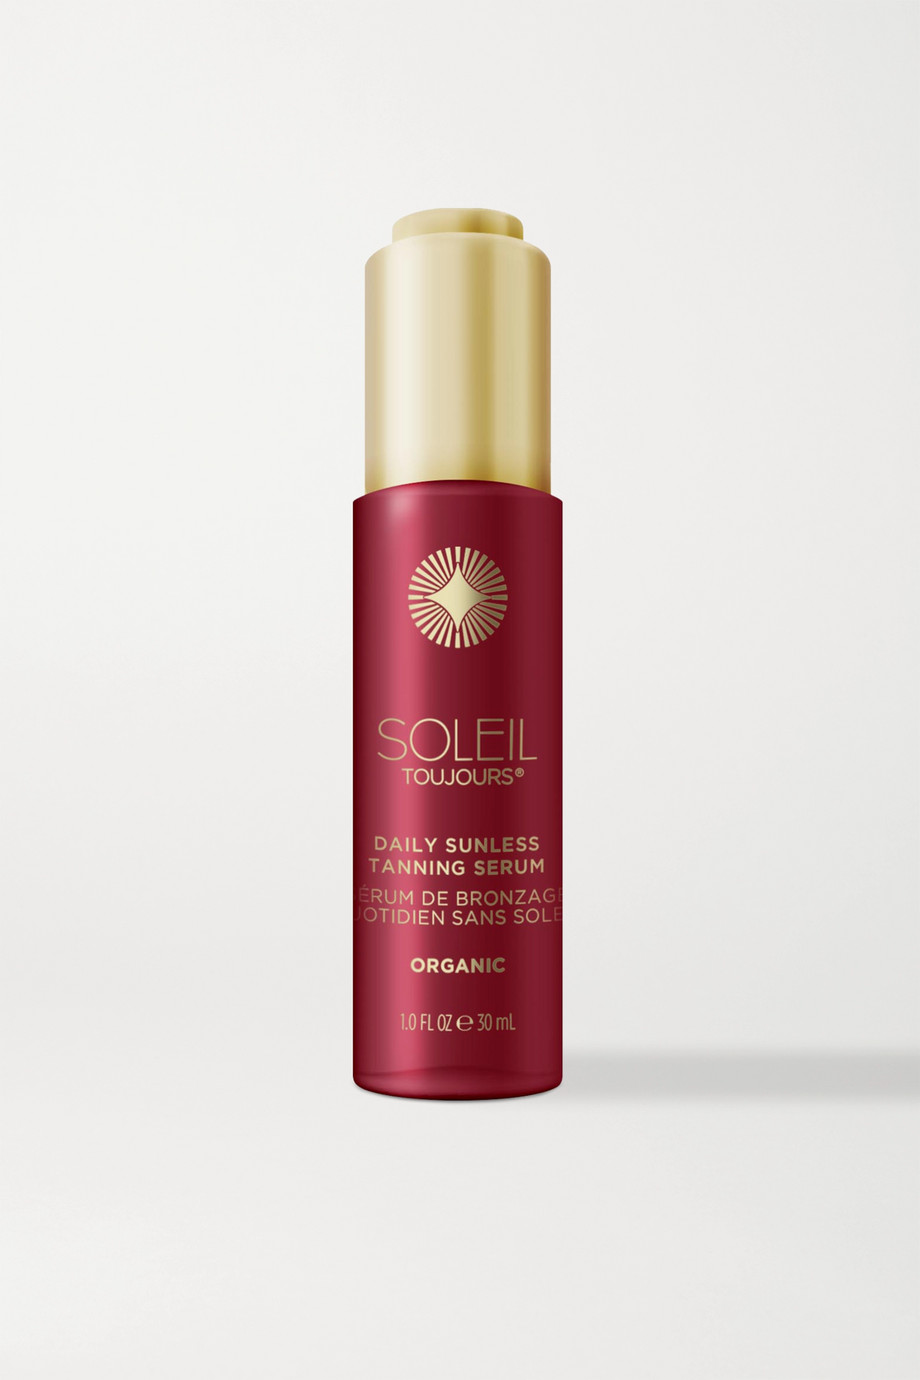 Soleil Toujours Organic Daily Sunless Tanning Serum, 30ml